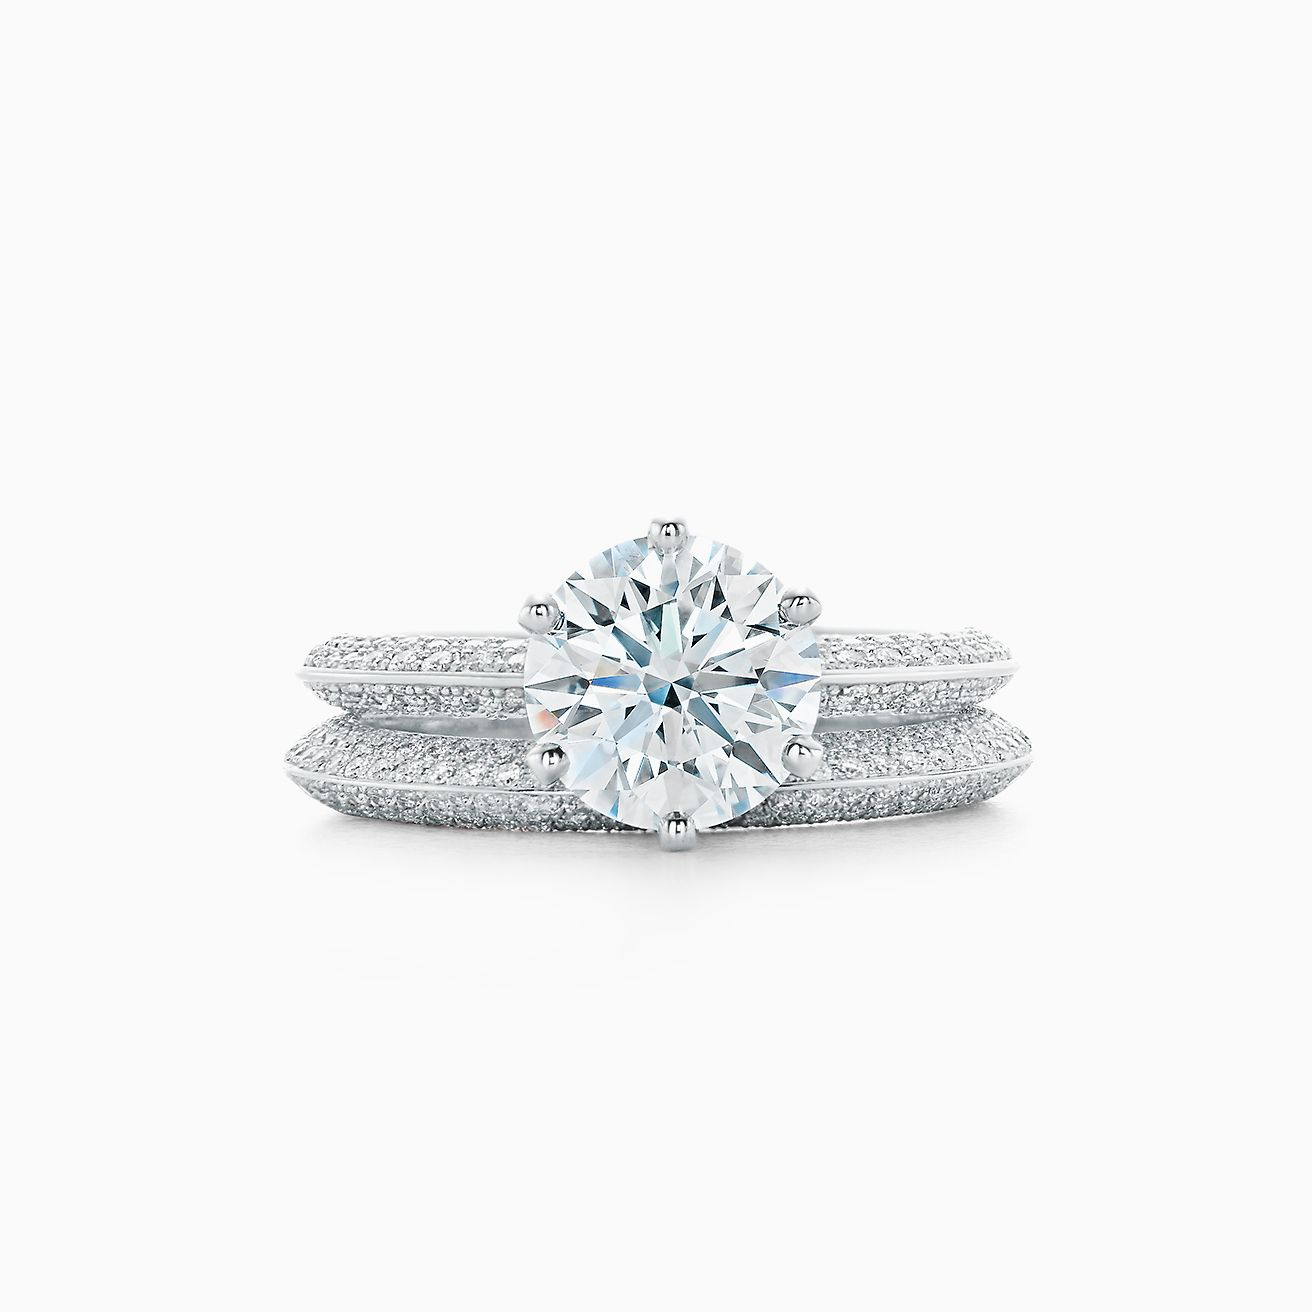 Tiffany Wedding Rings.Pave Tiffany Setting Engagement Ring With A Pave Diamond Band In Platinum